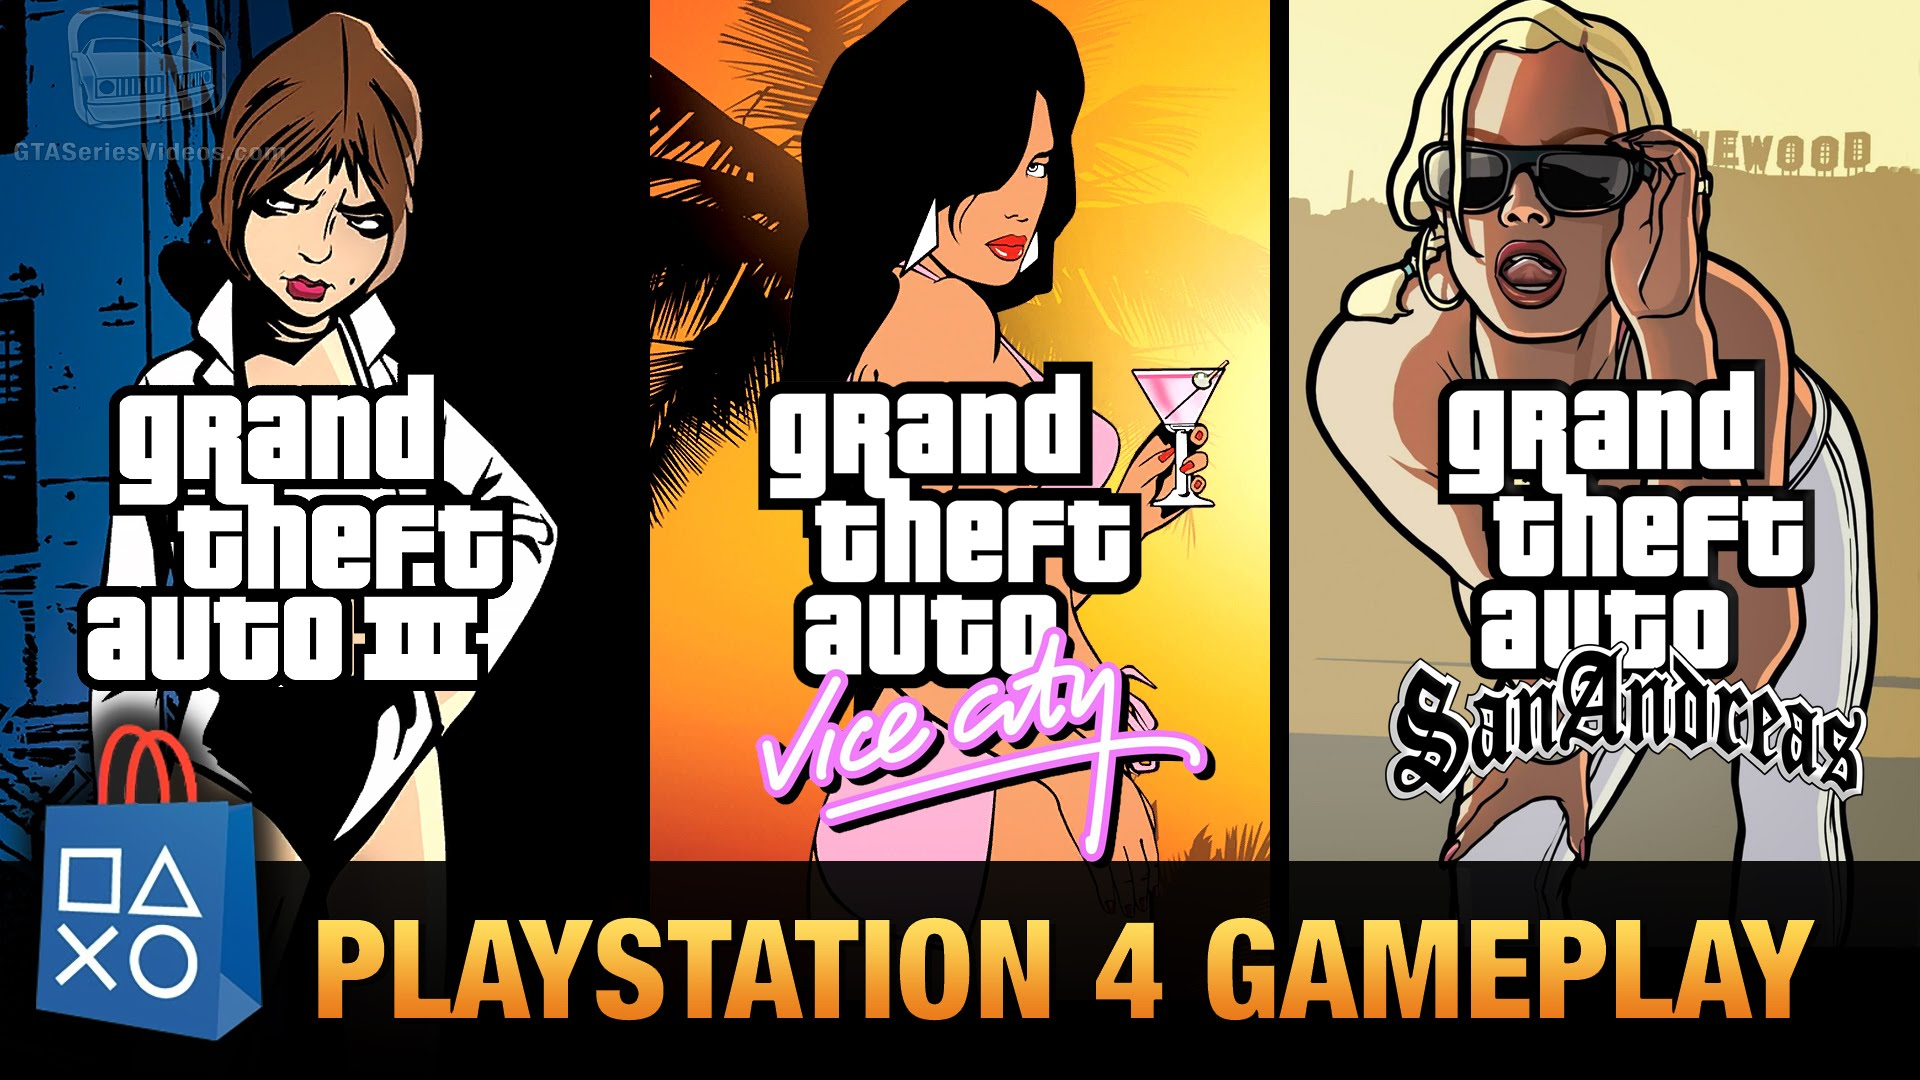 What is the cheat code for sex in gta vice city for PC